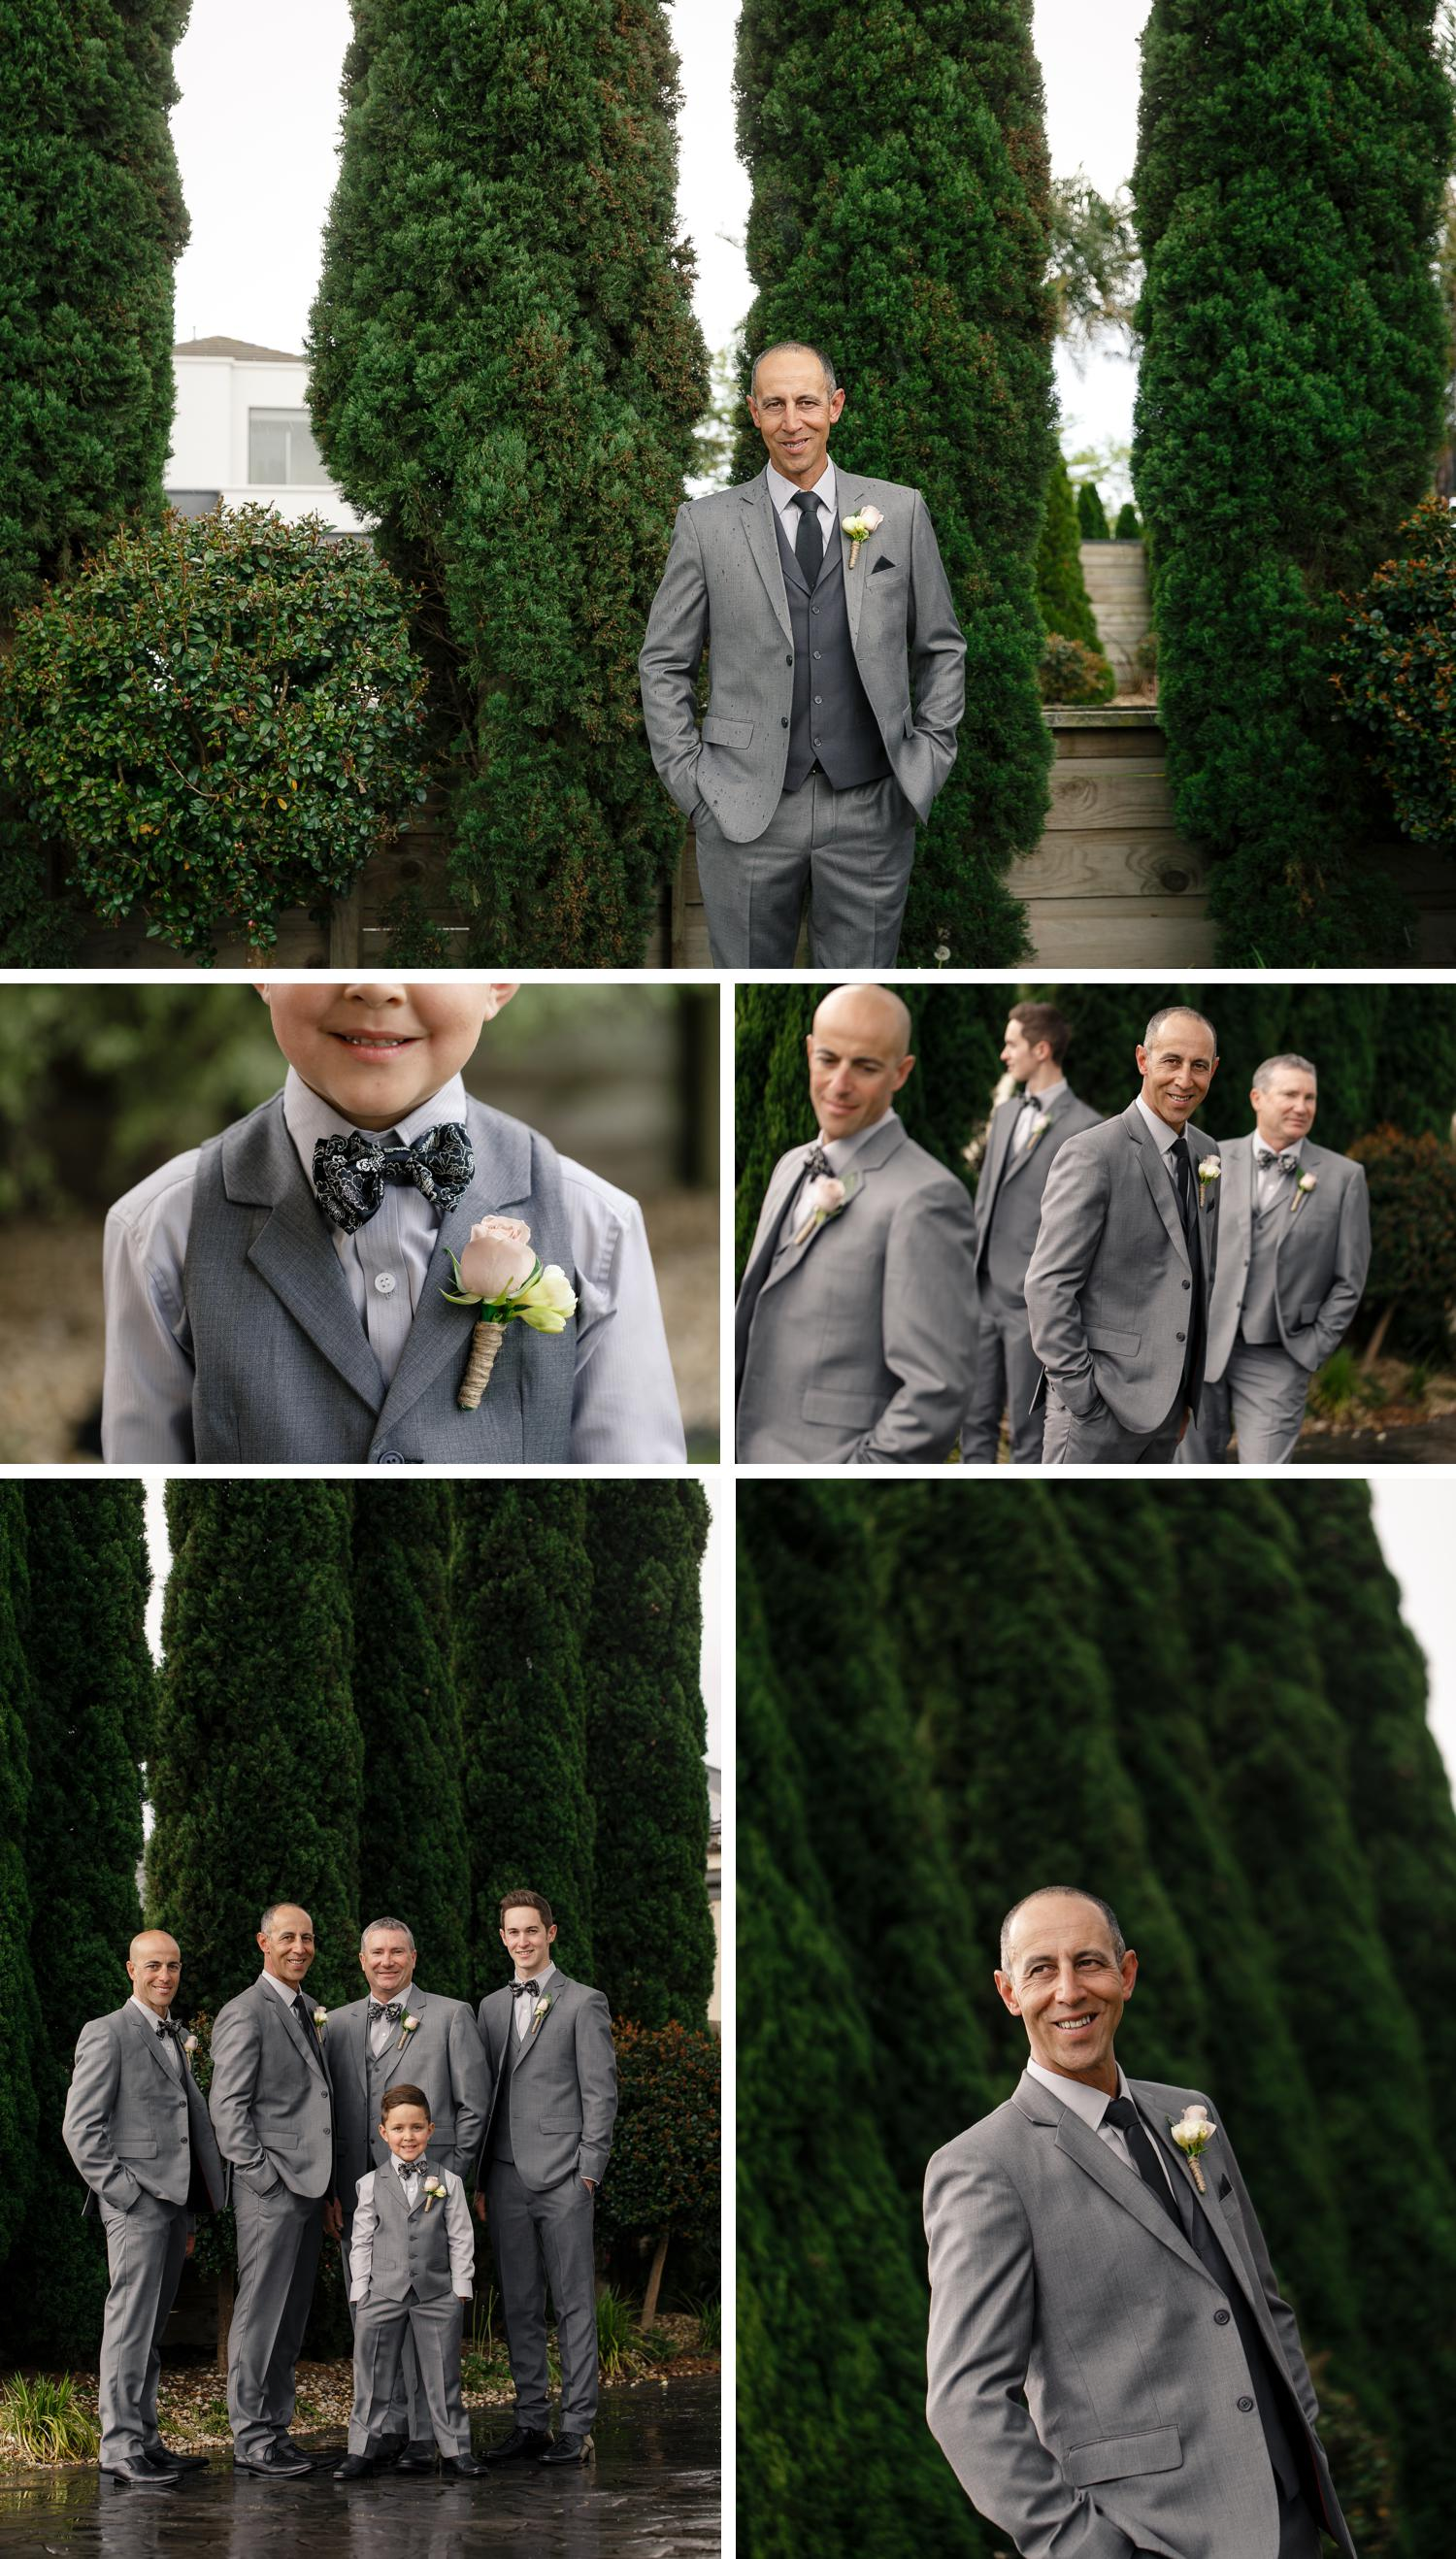 Traralgon Gippsland Wedding, Groom Getting Ready, Small Wedding Details by Danae Studios